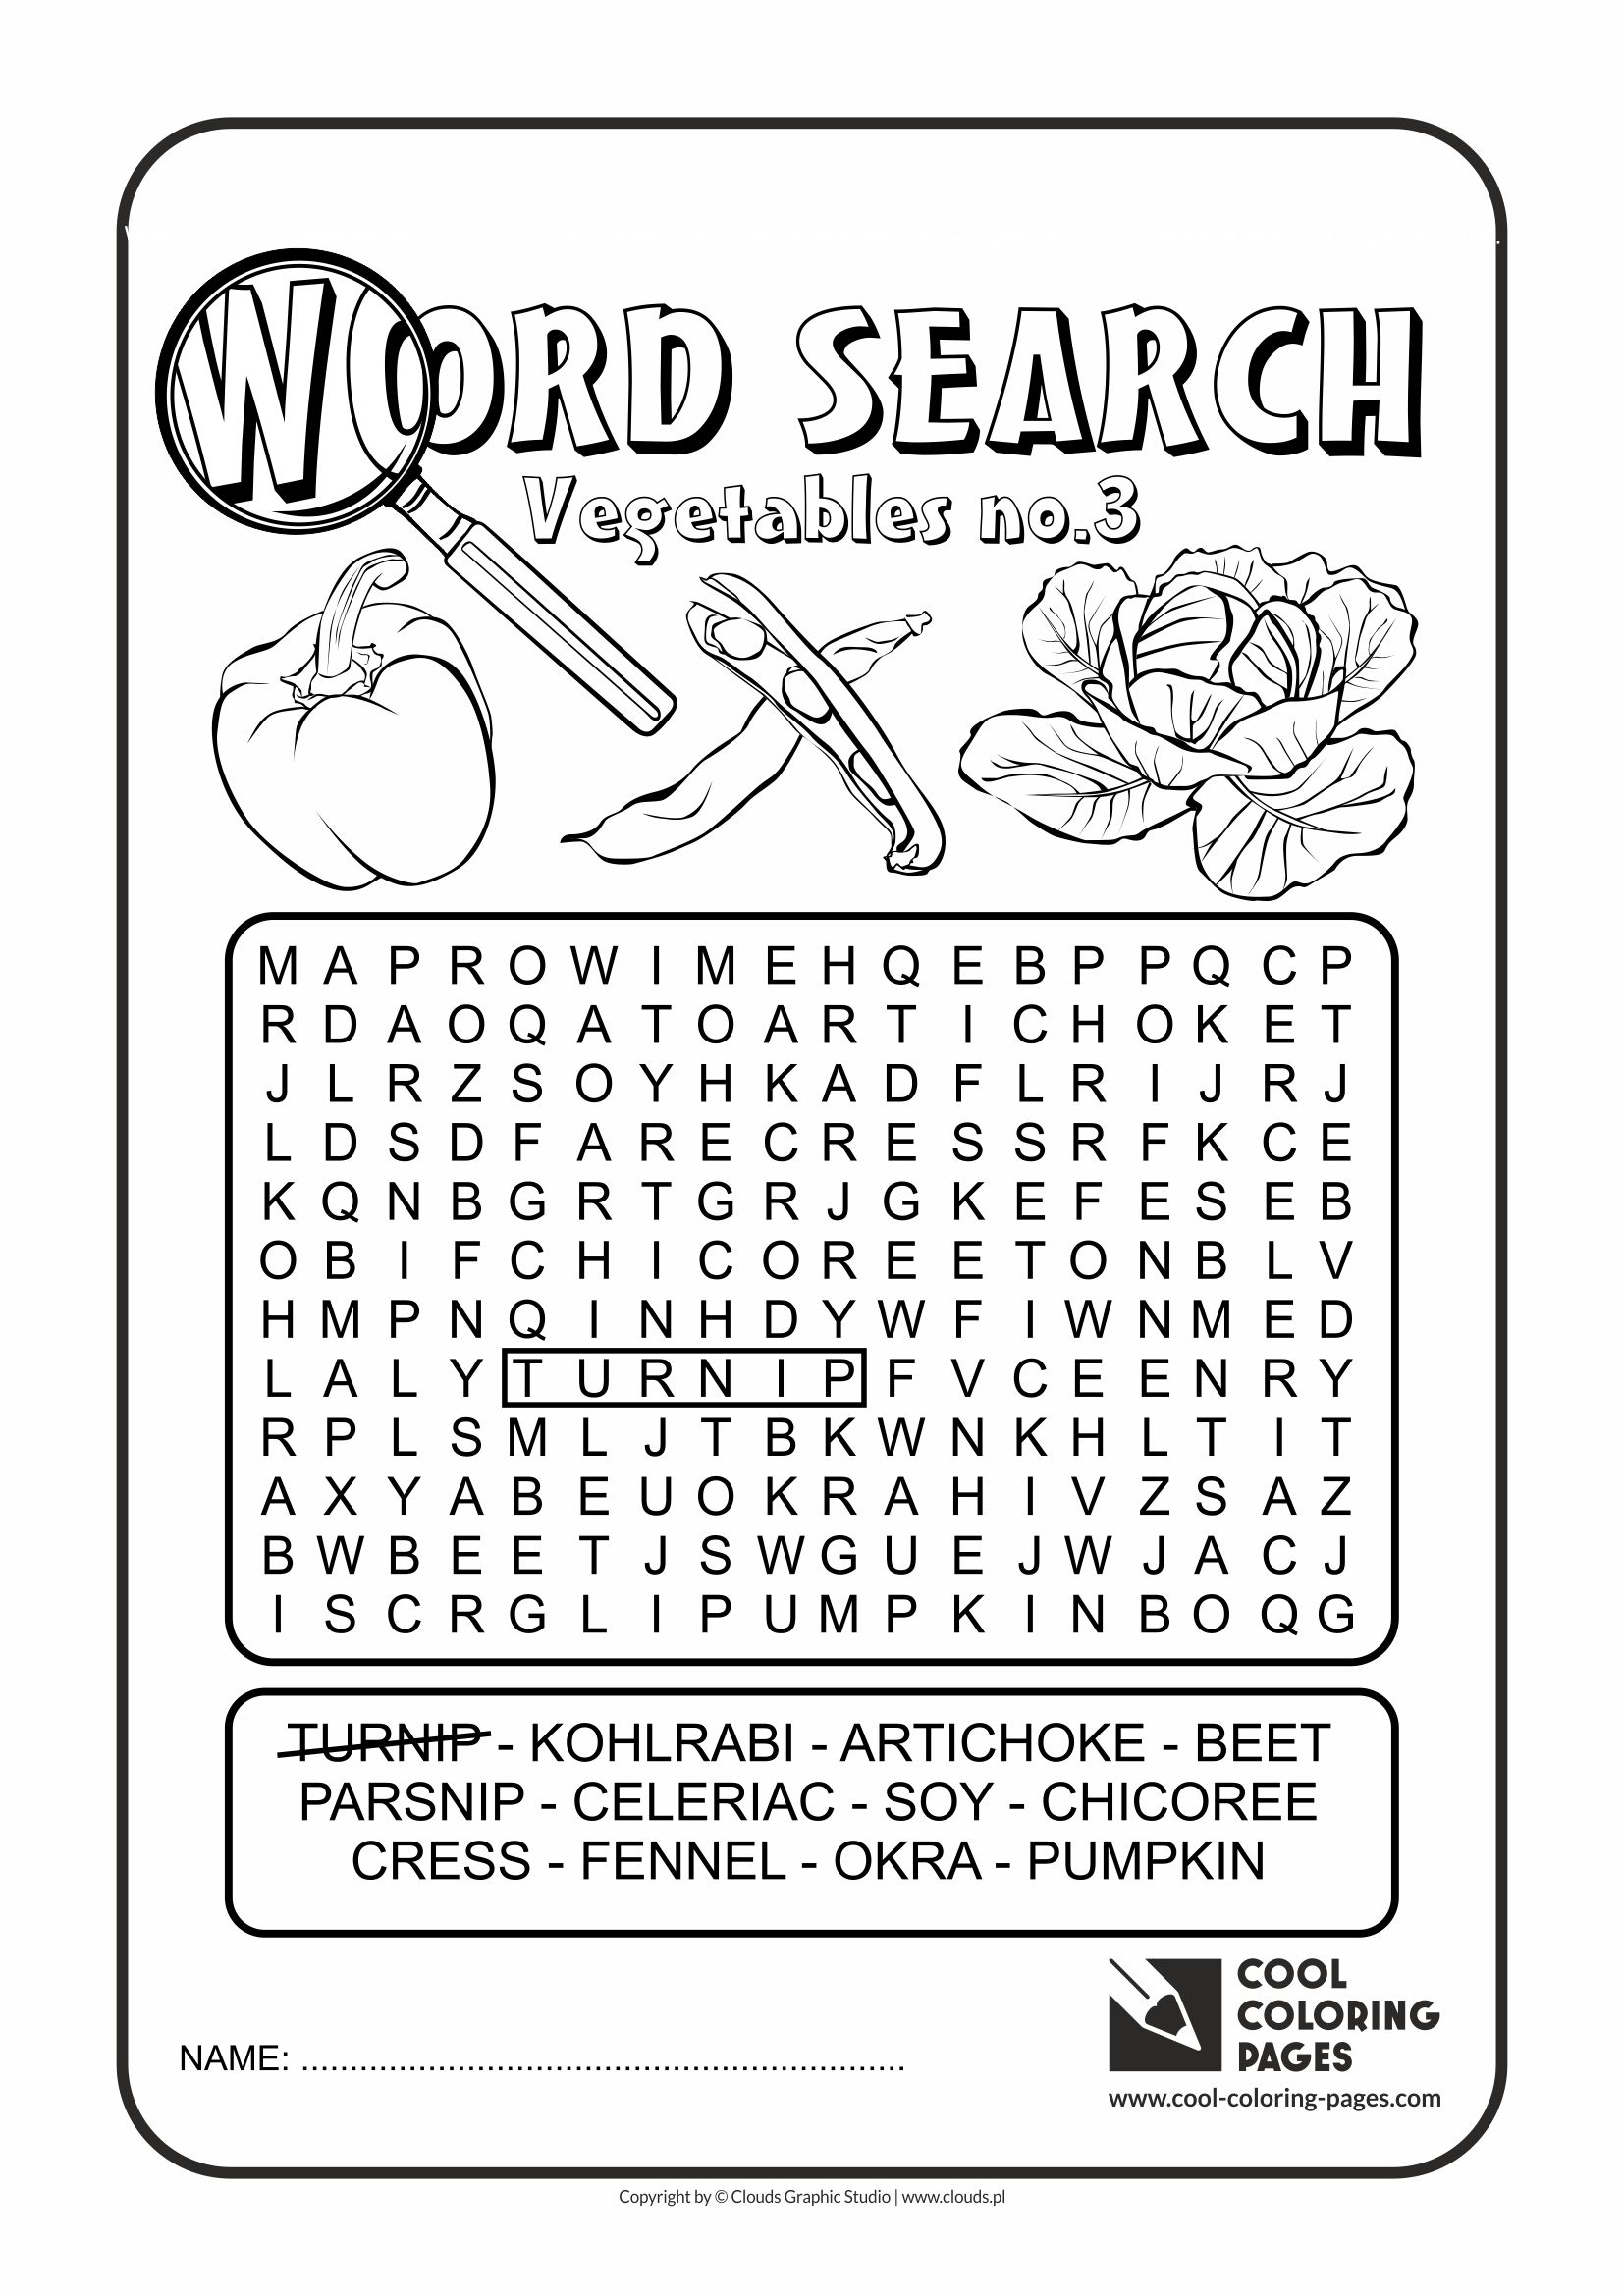 Cool Coloring Pages Word Search Cool Coloring Pages Free